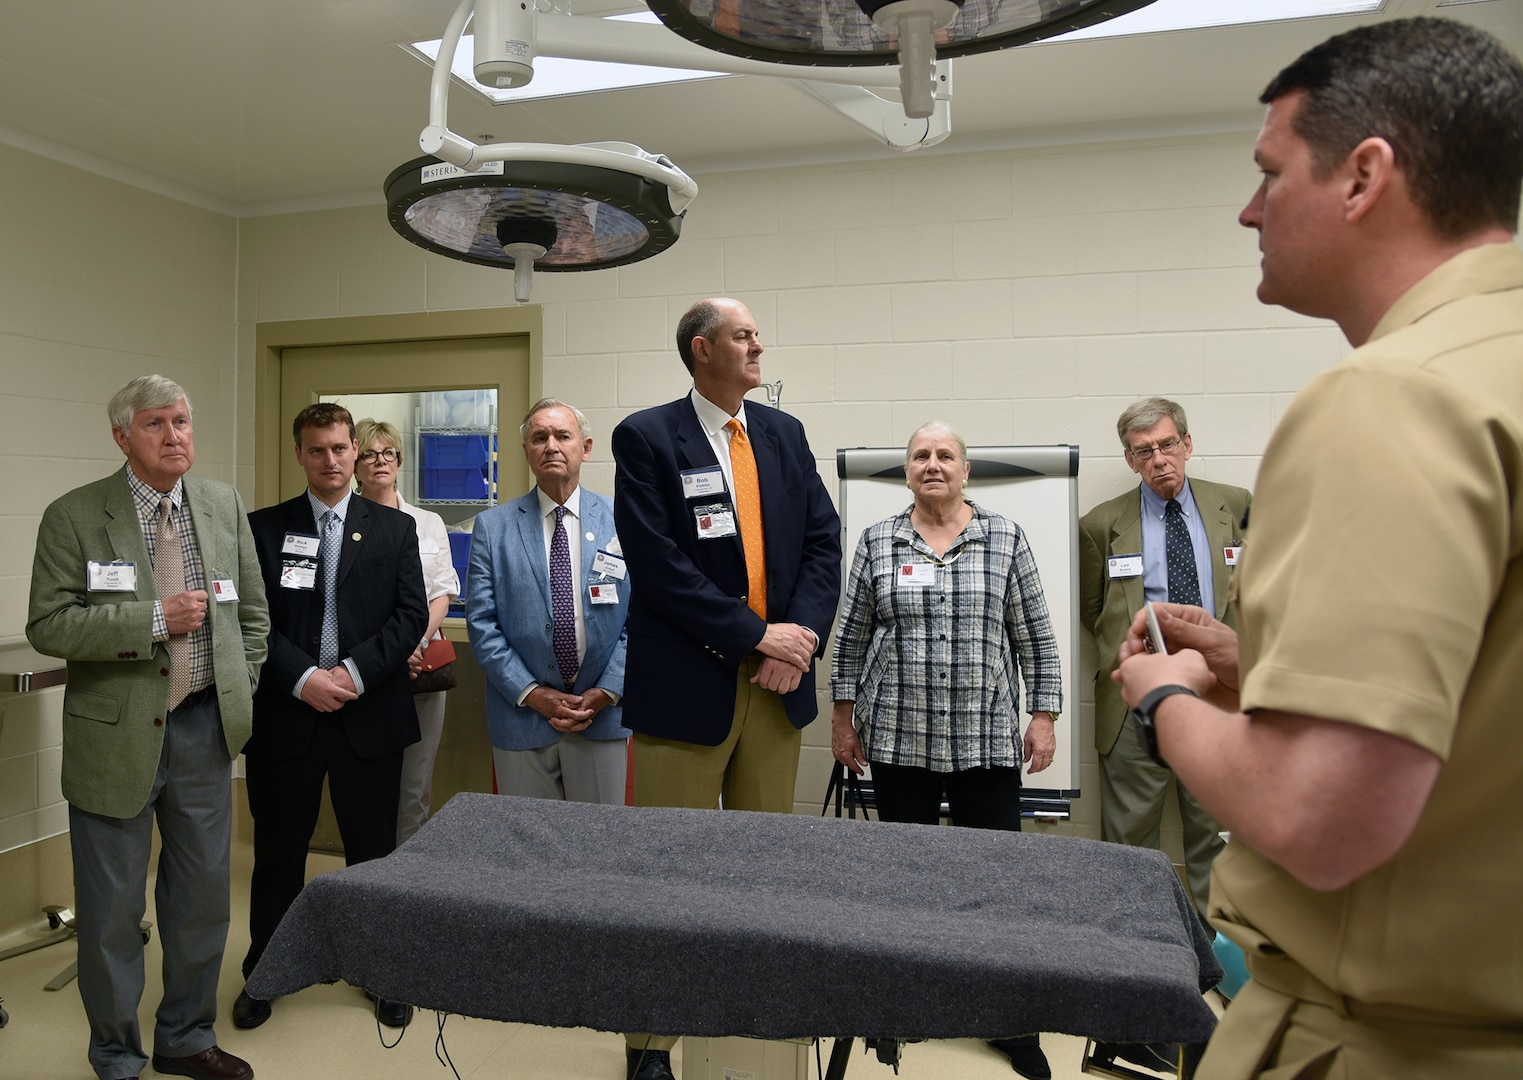 Cmdr. Jacob Glaser (right), trauma surgeon and head of NAMRU-SA's Expeditionary and Trauma Medicine Department, talks to Defense Orientation Conference Association (DOCA) visitors about the most promising treatments and technologies NAMRU-SA is investigating to improve combat casualty outcomes during a tour of NAMRU-SA facilities at the Tri-Service Research Laboratory at Joint Base San Antonio-Fort Sam Houston April 27.